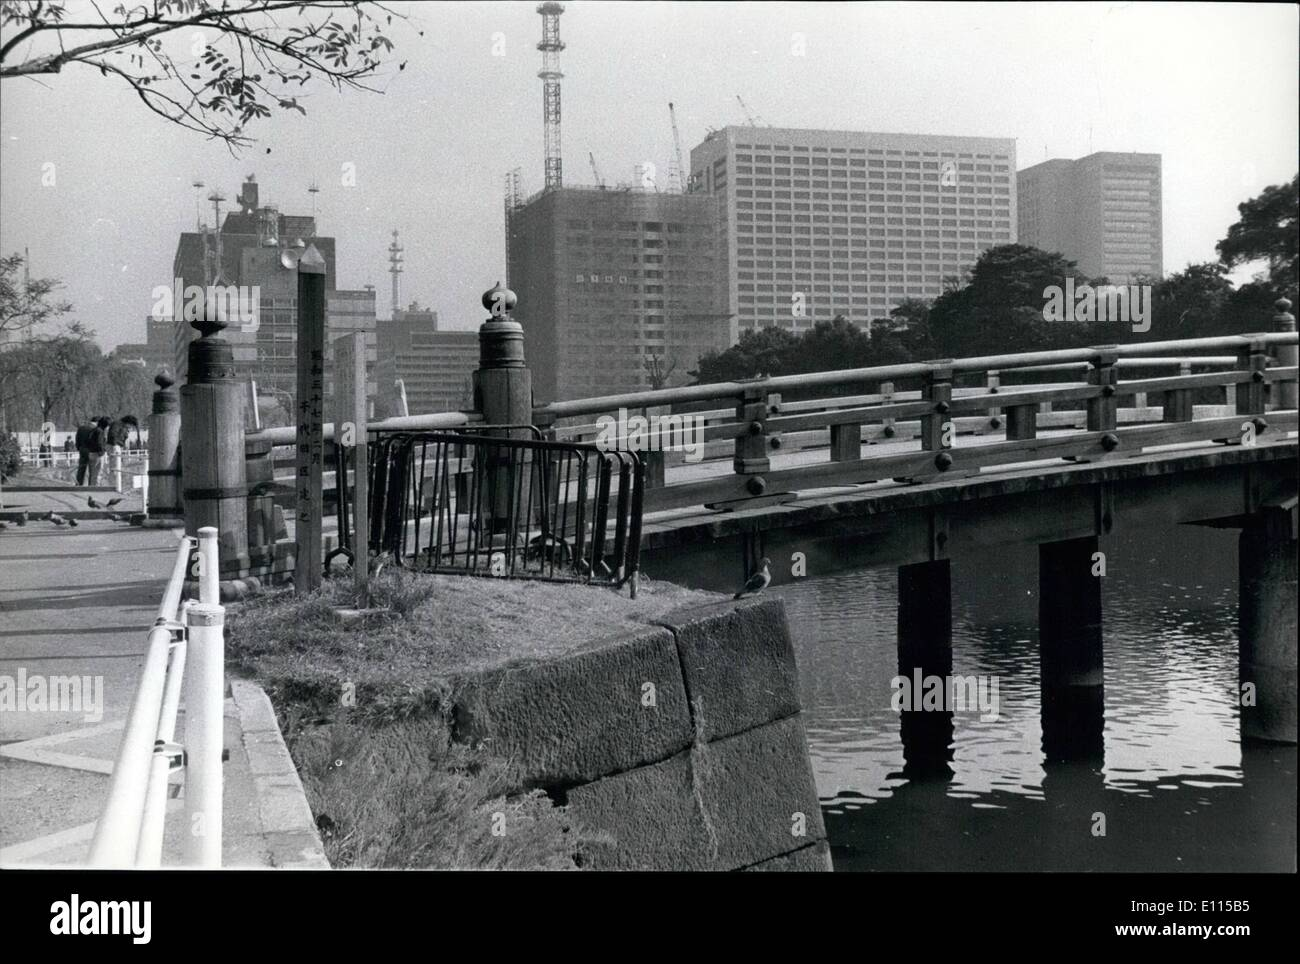 Dec. 12, 1975 - A little of old Edo (Tokyo) remains: The old wooden bridge across the Imperial Palace moat to the Kikyo Mon (Bellflower Gate), built when the city was called Edo, remains solid and dignified in the concrete jungle of modern high rise commercial buildings, that now surround the palace, the residence of the Emperor and Empress of Japan. - Stock Image